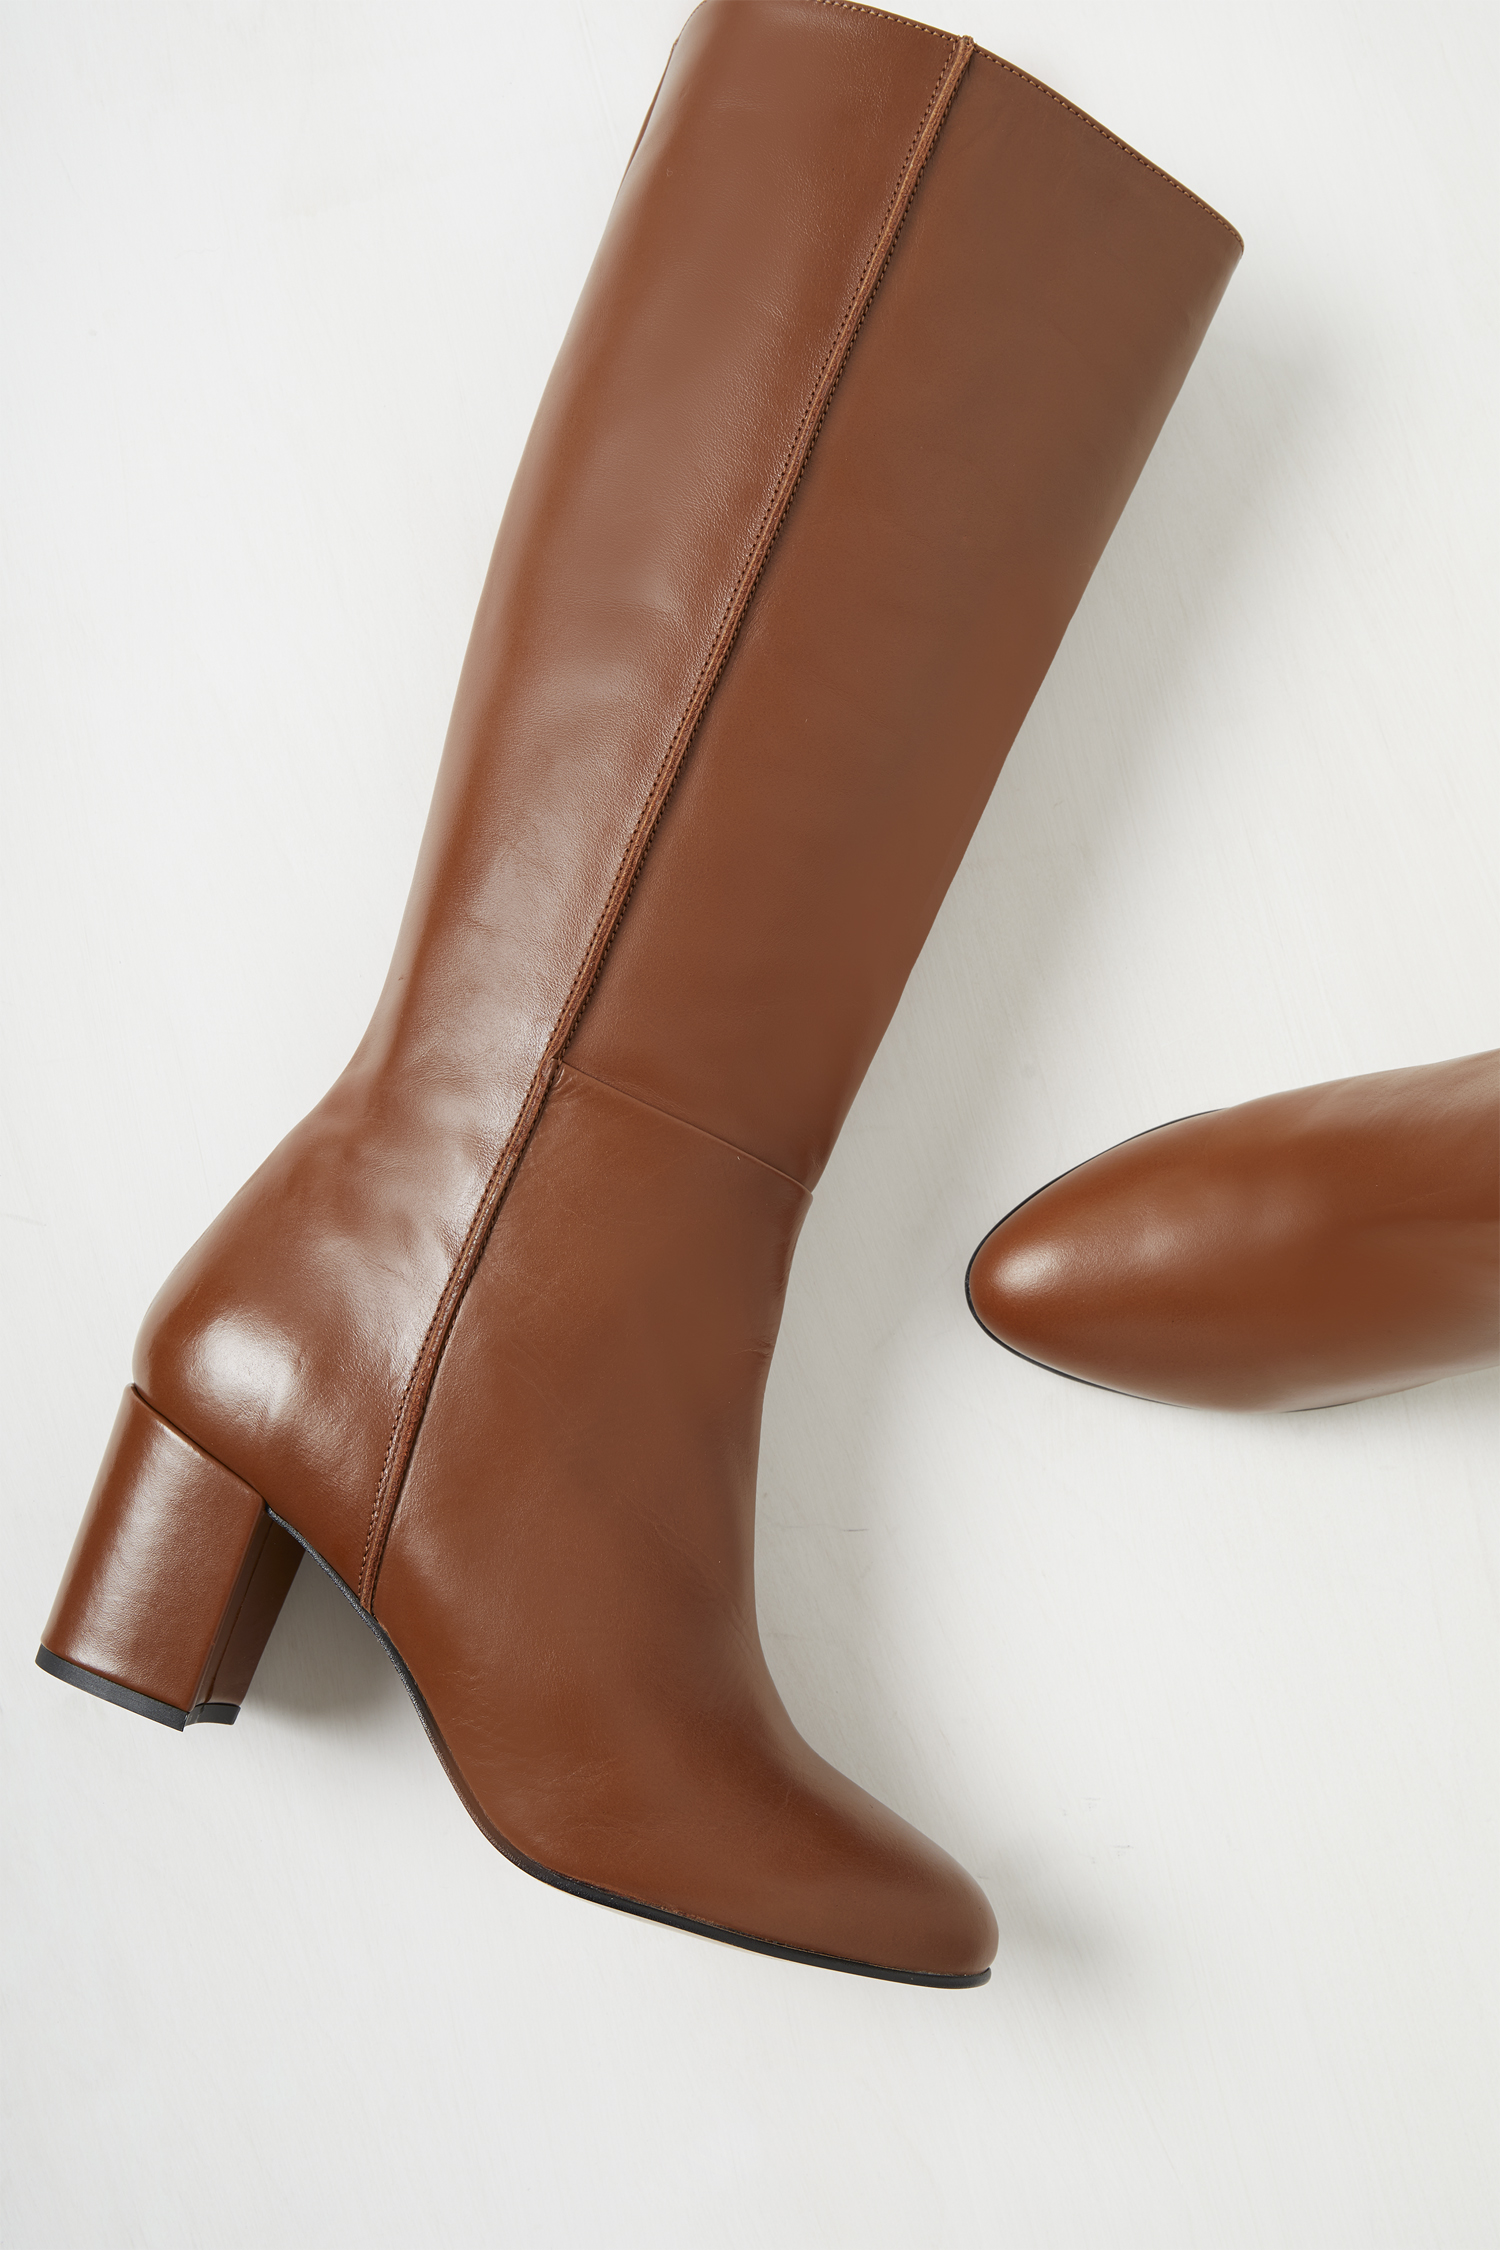 Women's Knee High Boots from